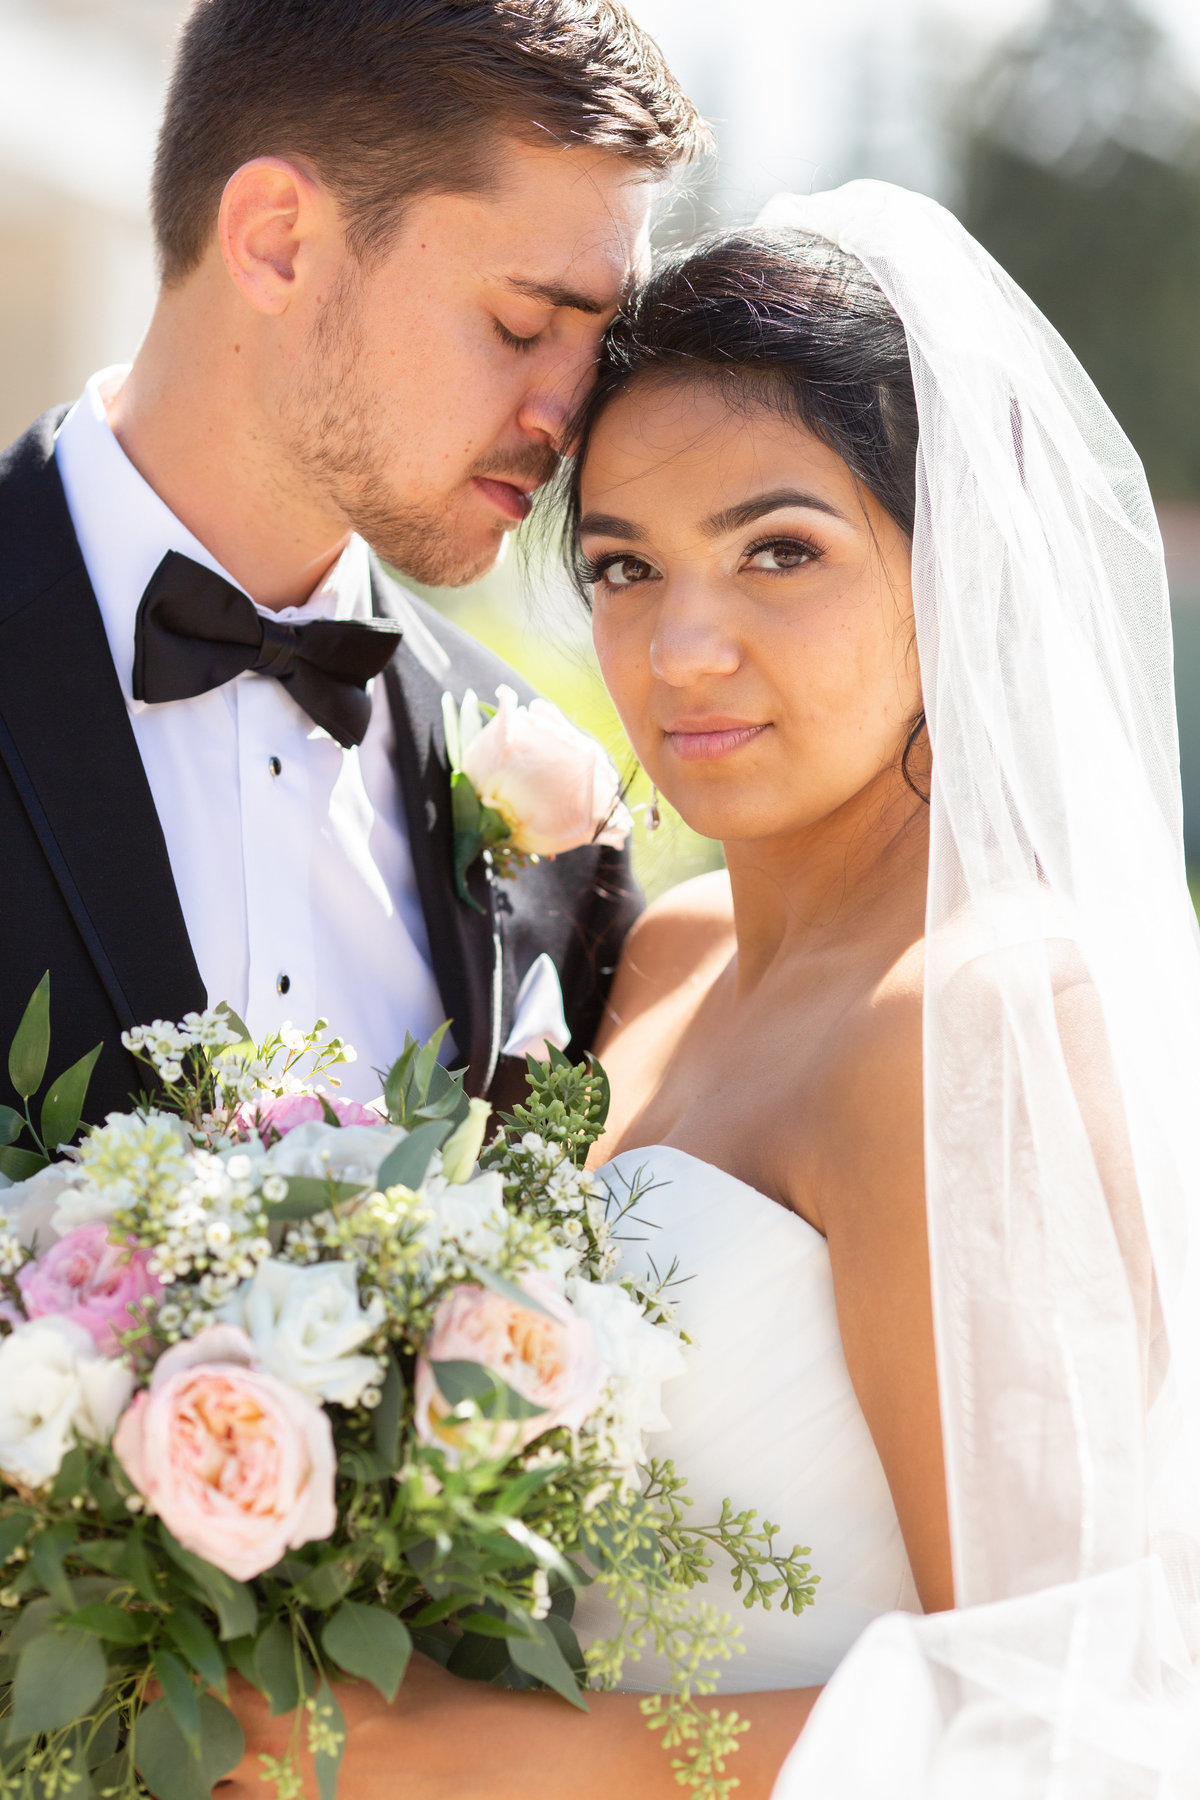 Ohio Wedding Photographer - Best 2019-197